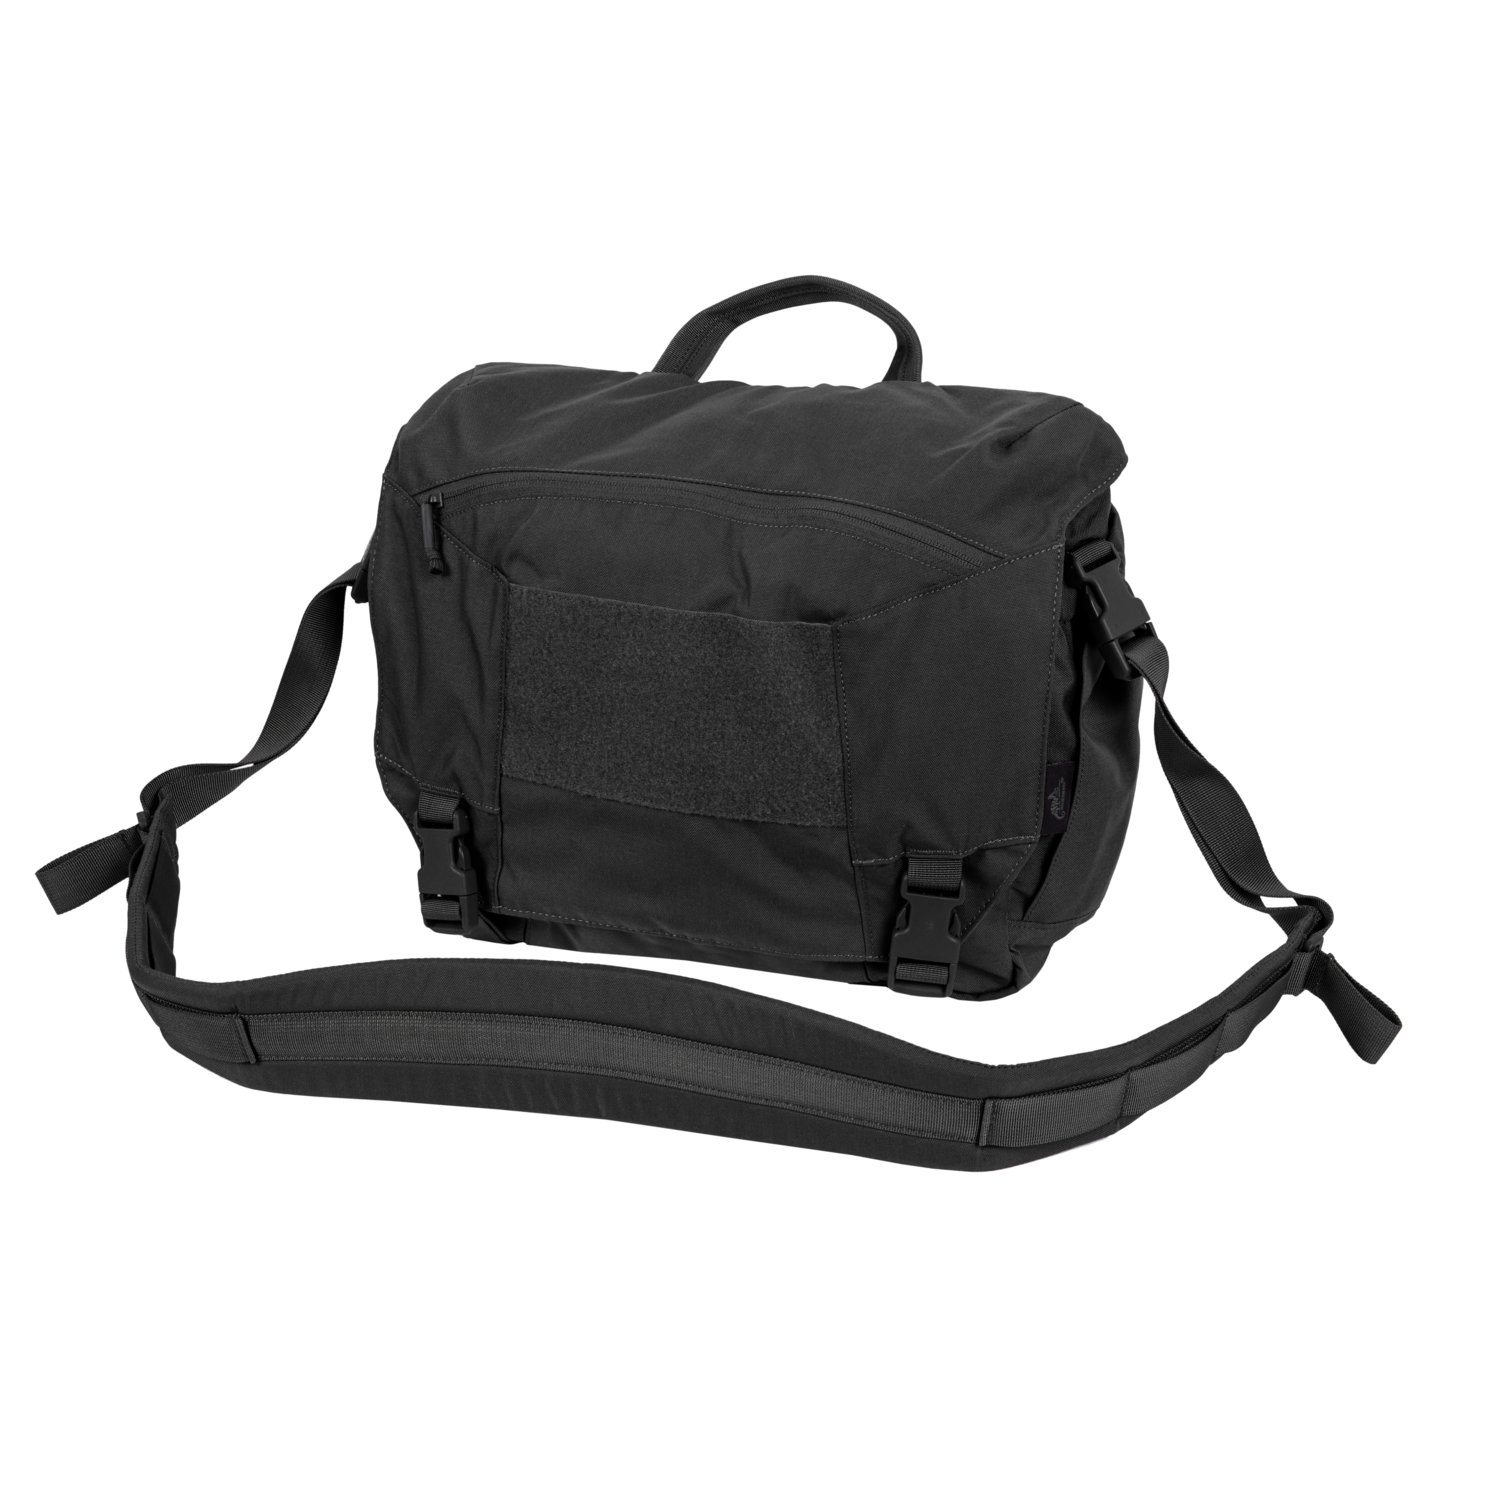 TÚI URBAN COURIER BAG MEDIUM® – CORDURA® – Black